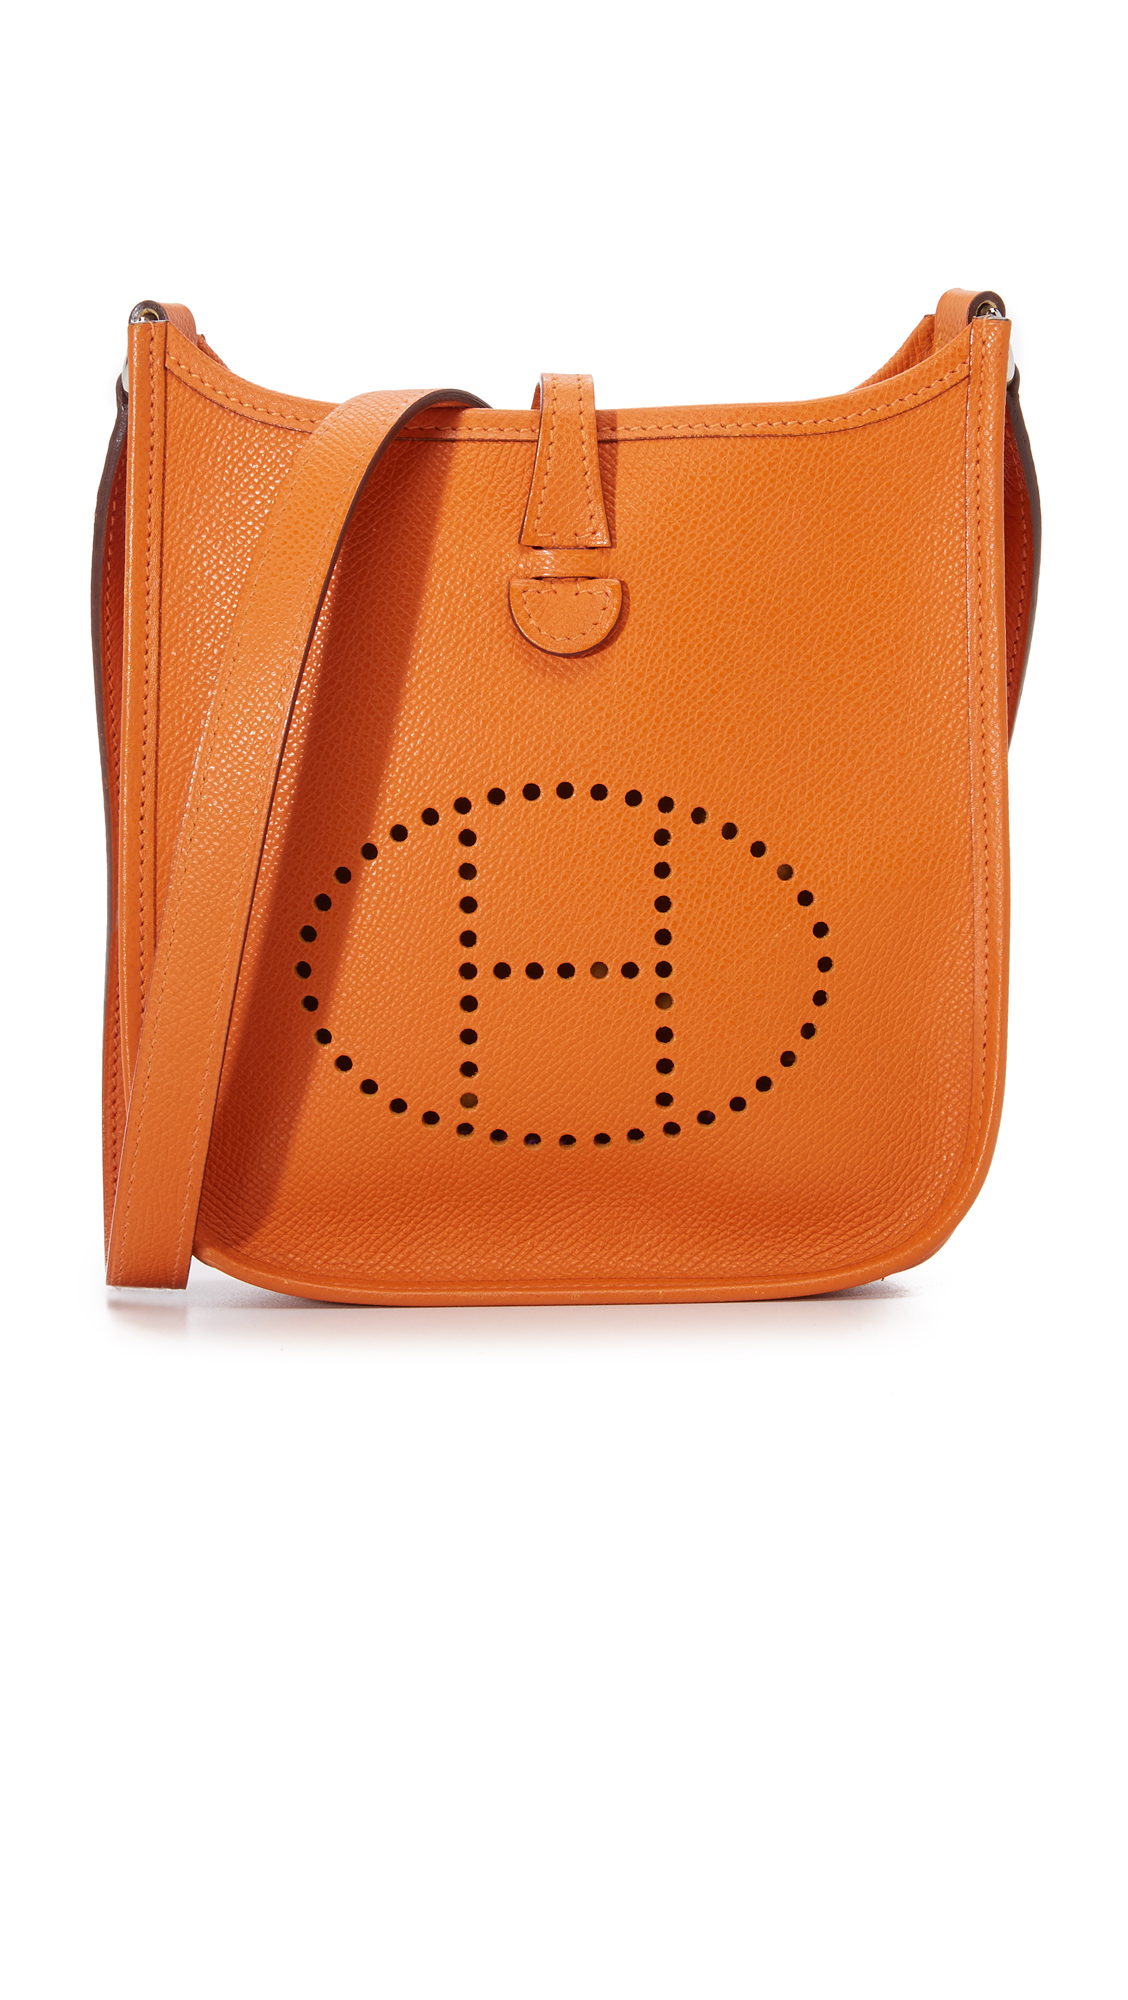 what goes around comes around female what goes around comes around hermes evelyne bag previously owned orange